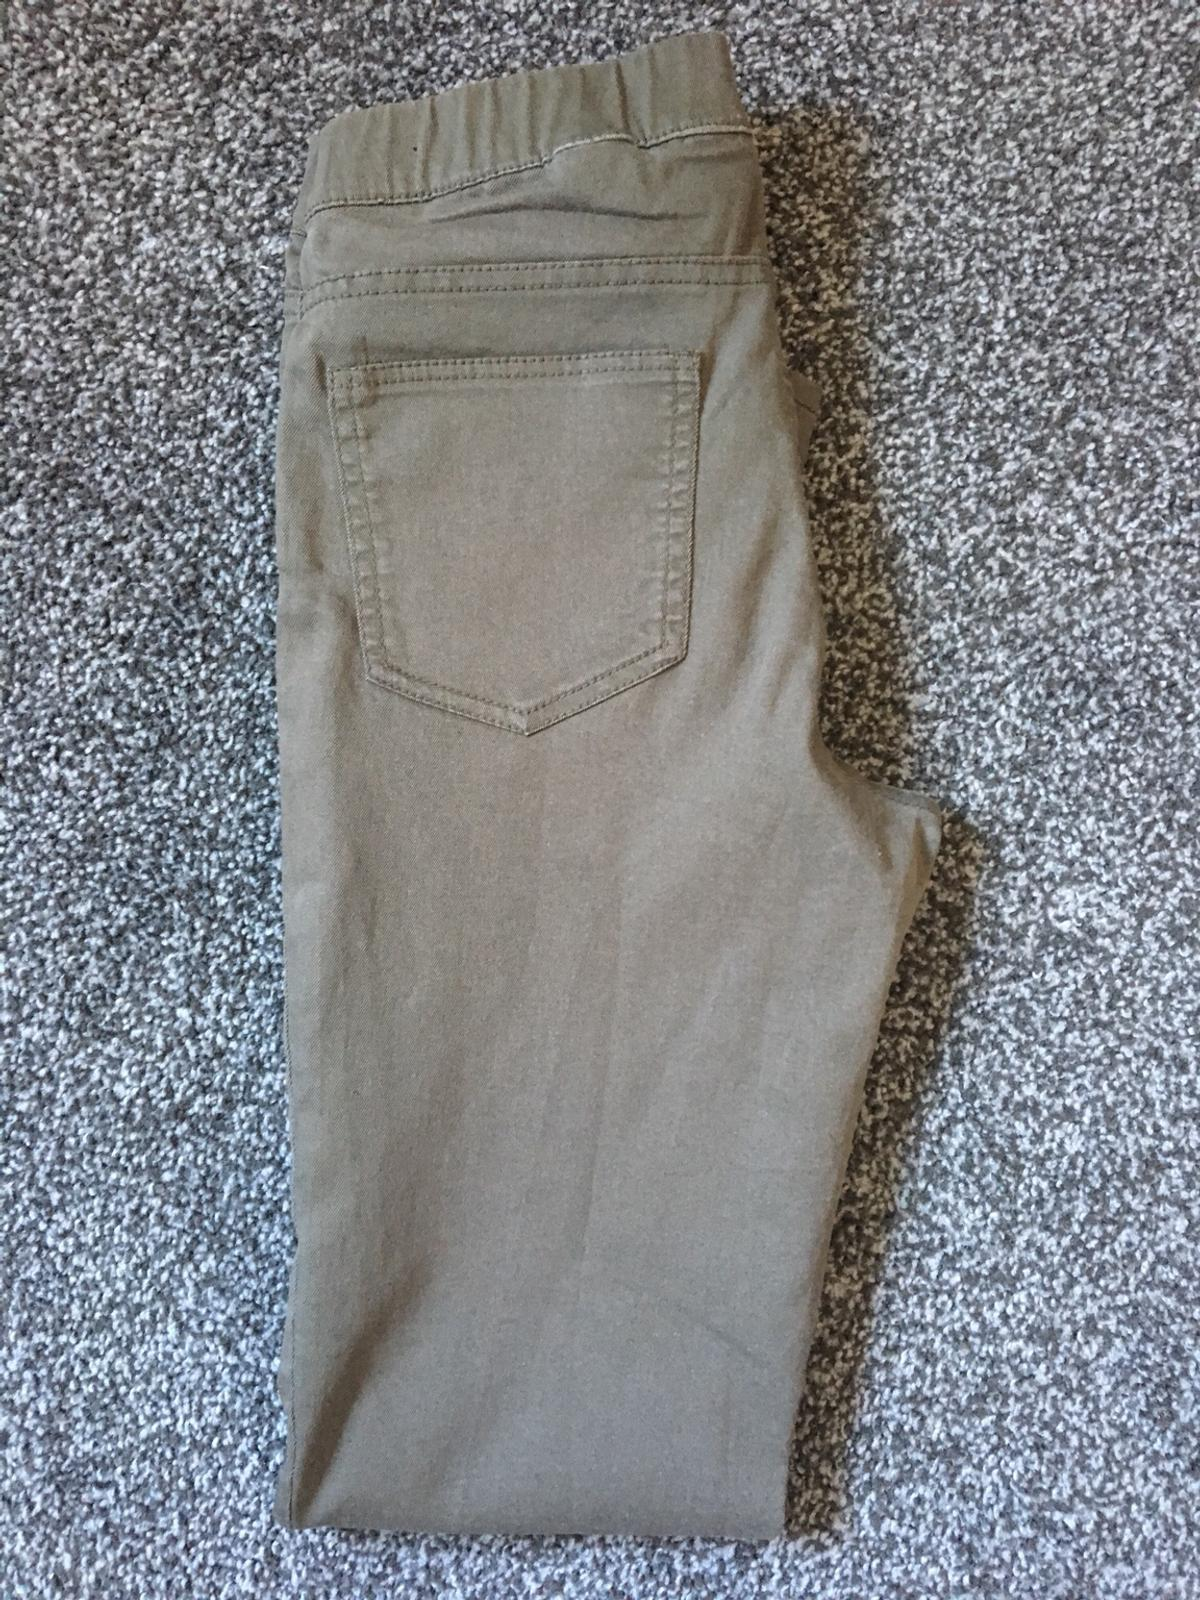 H&M Ladies Jeggings/Trousers. Beige/Khaki Colour. Good condition. Size EUR 36, Size 10. Royal Mail delivery only or collection